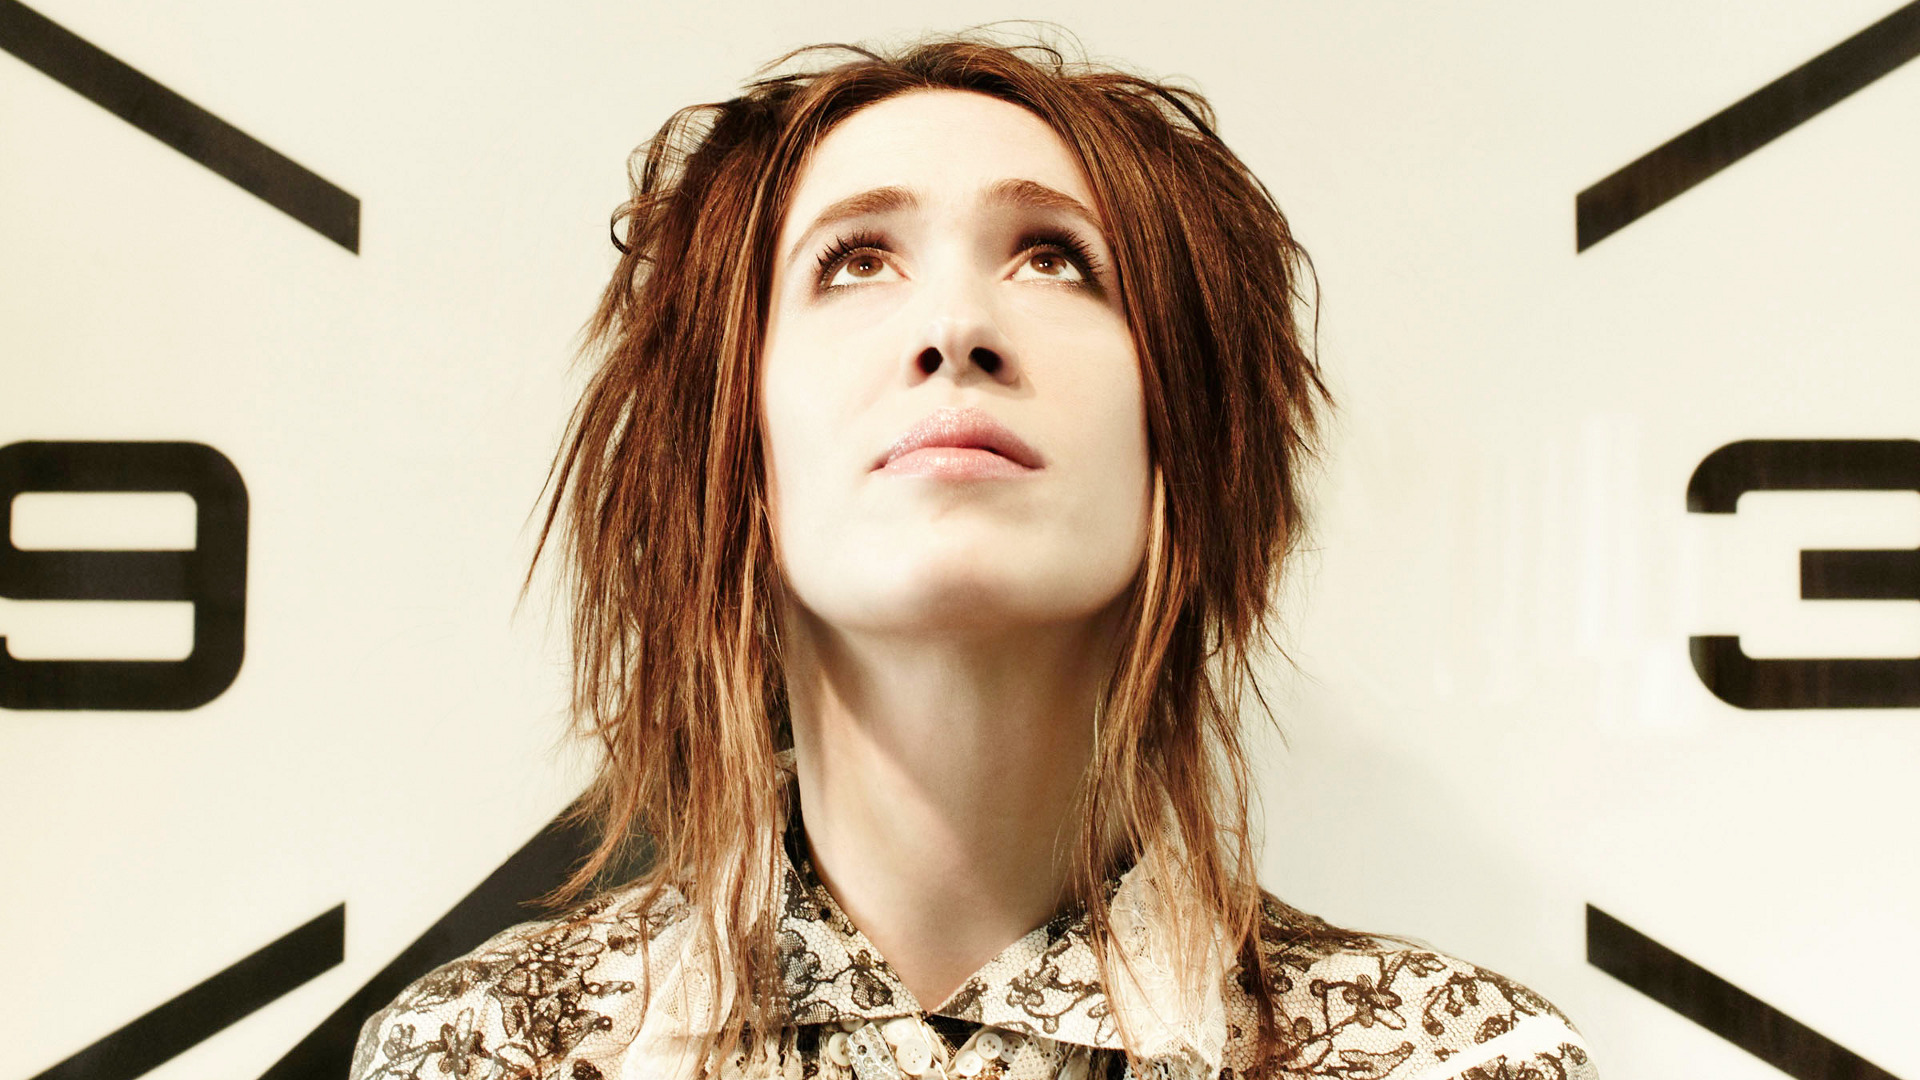 Imogen Heap – Fiction/Genepool/NoCarbon